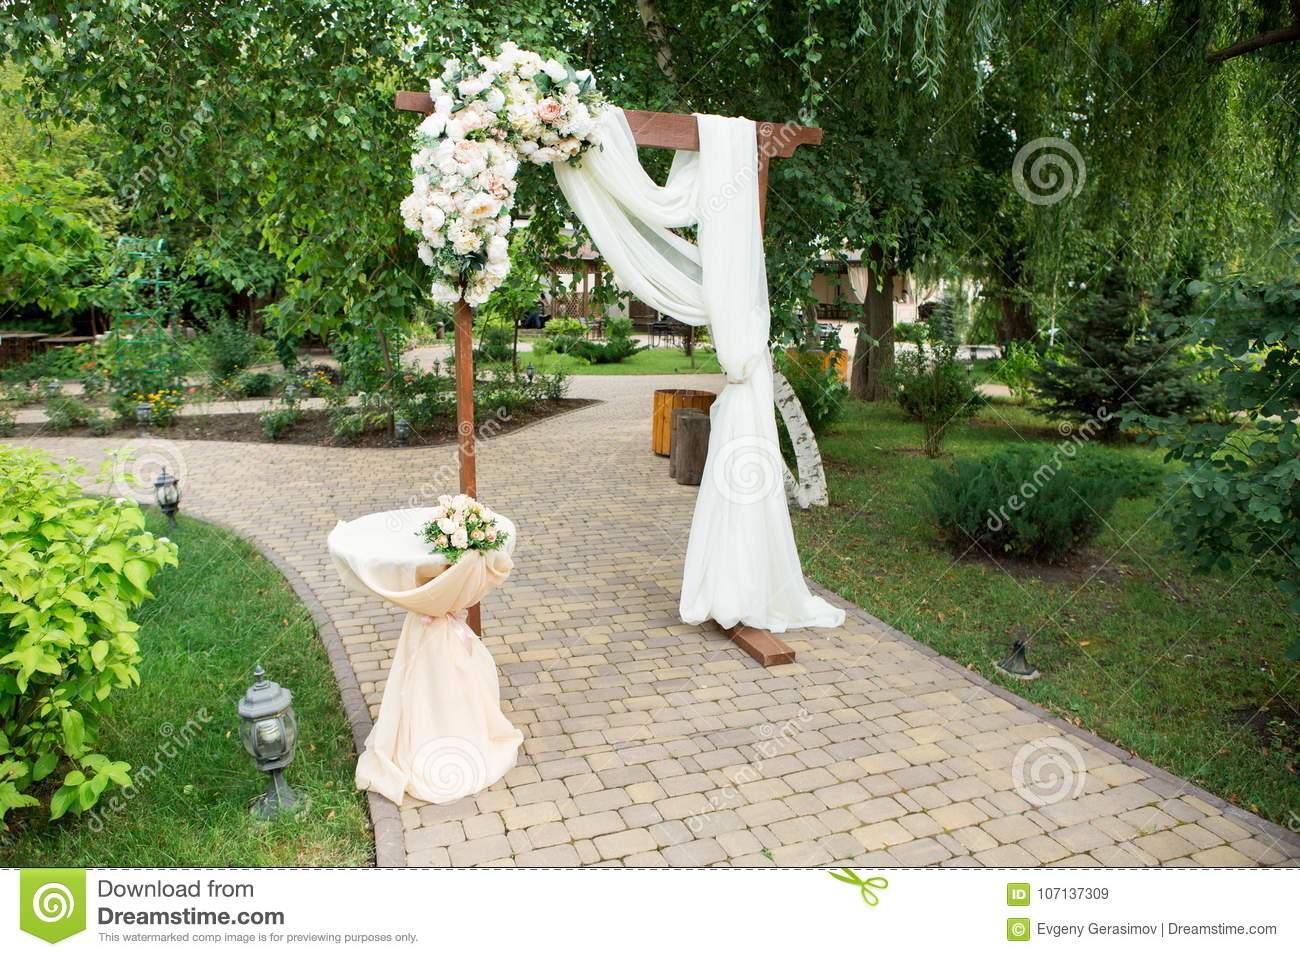 Wedding arch decorated with fresh flowers stock image image of download wedding arch decorated with fresh flowers stock image image of park decorative junglespirit Choice Image